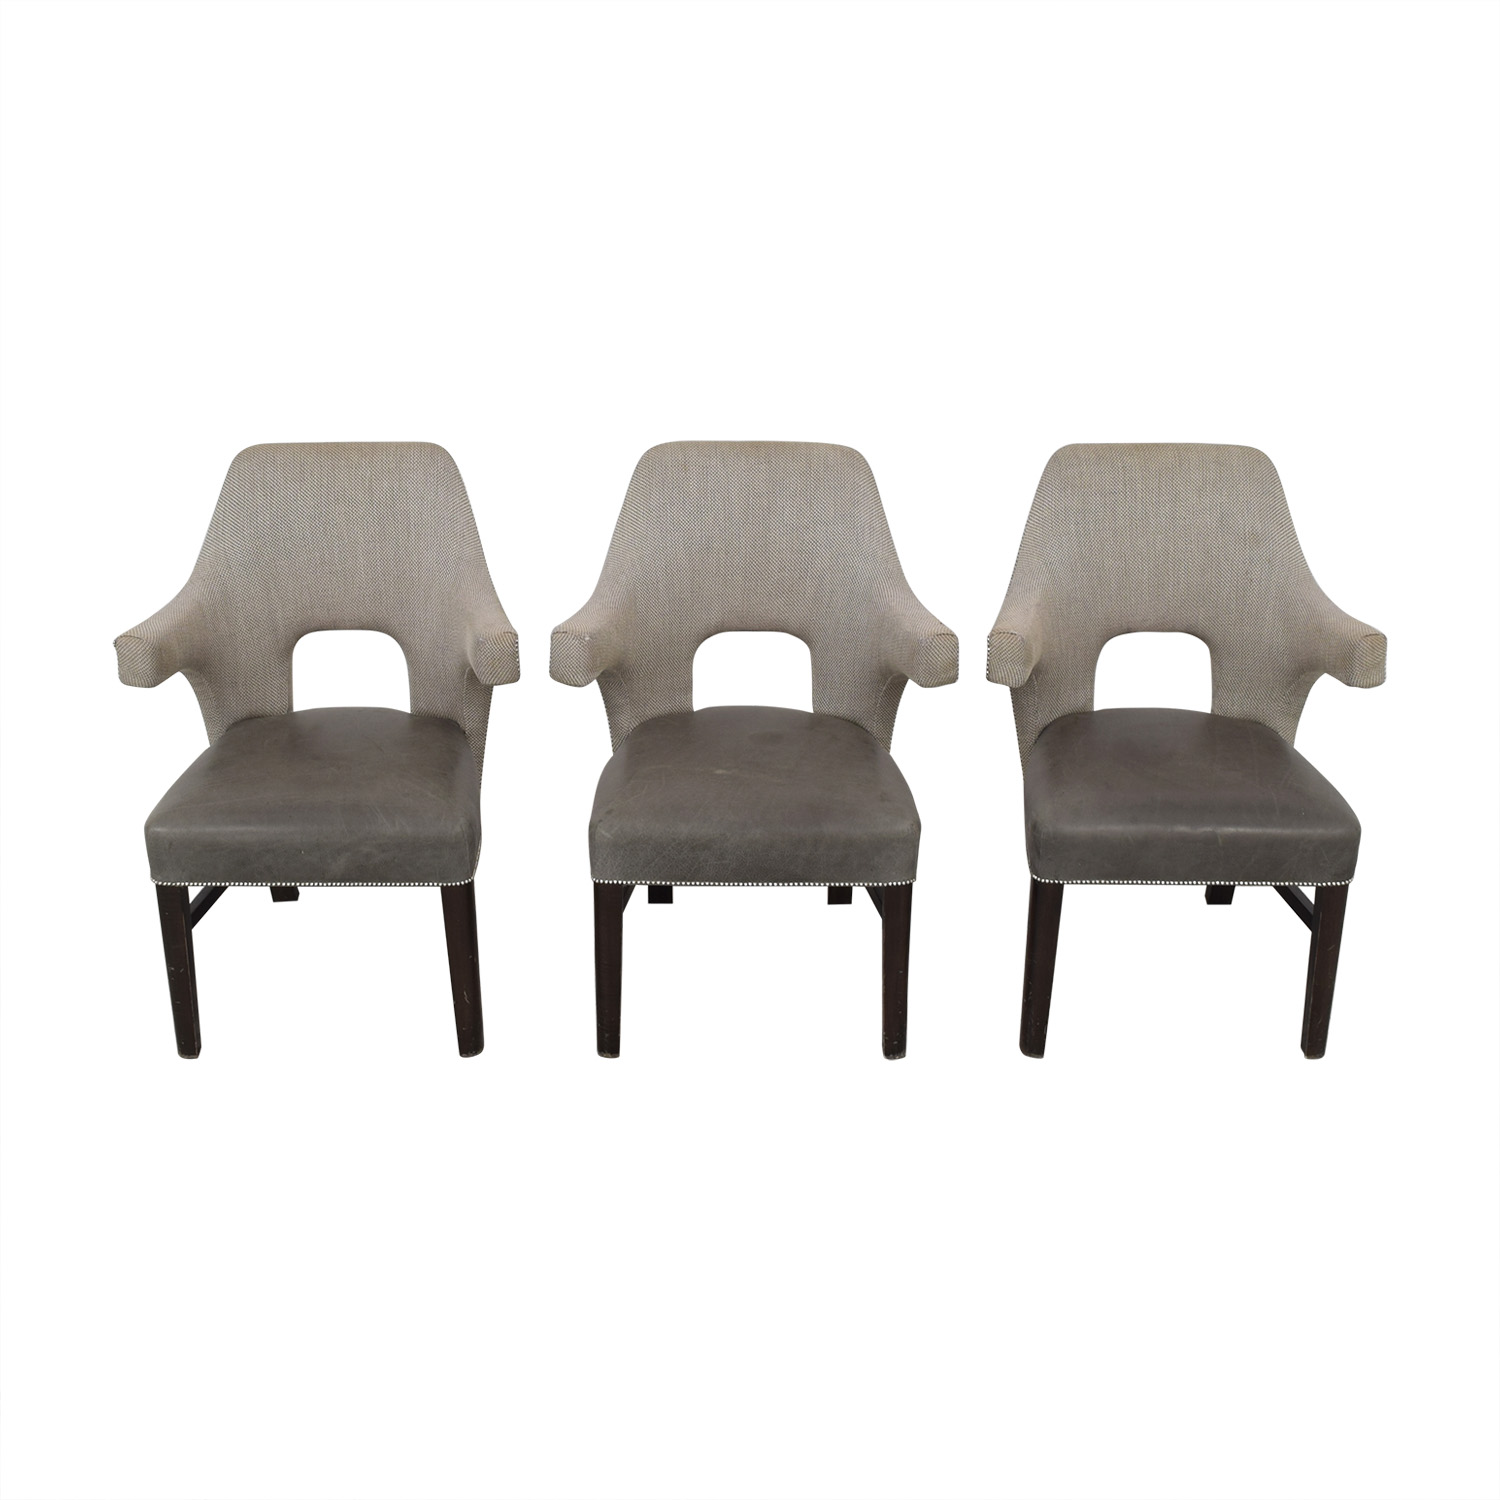 Thom Filicia Thom Filicia Modern Dining Chairs nyc